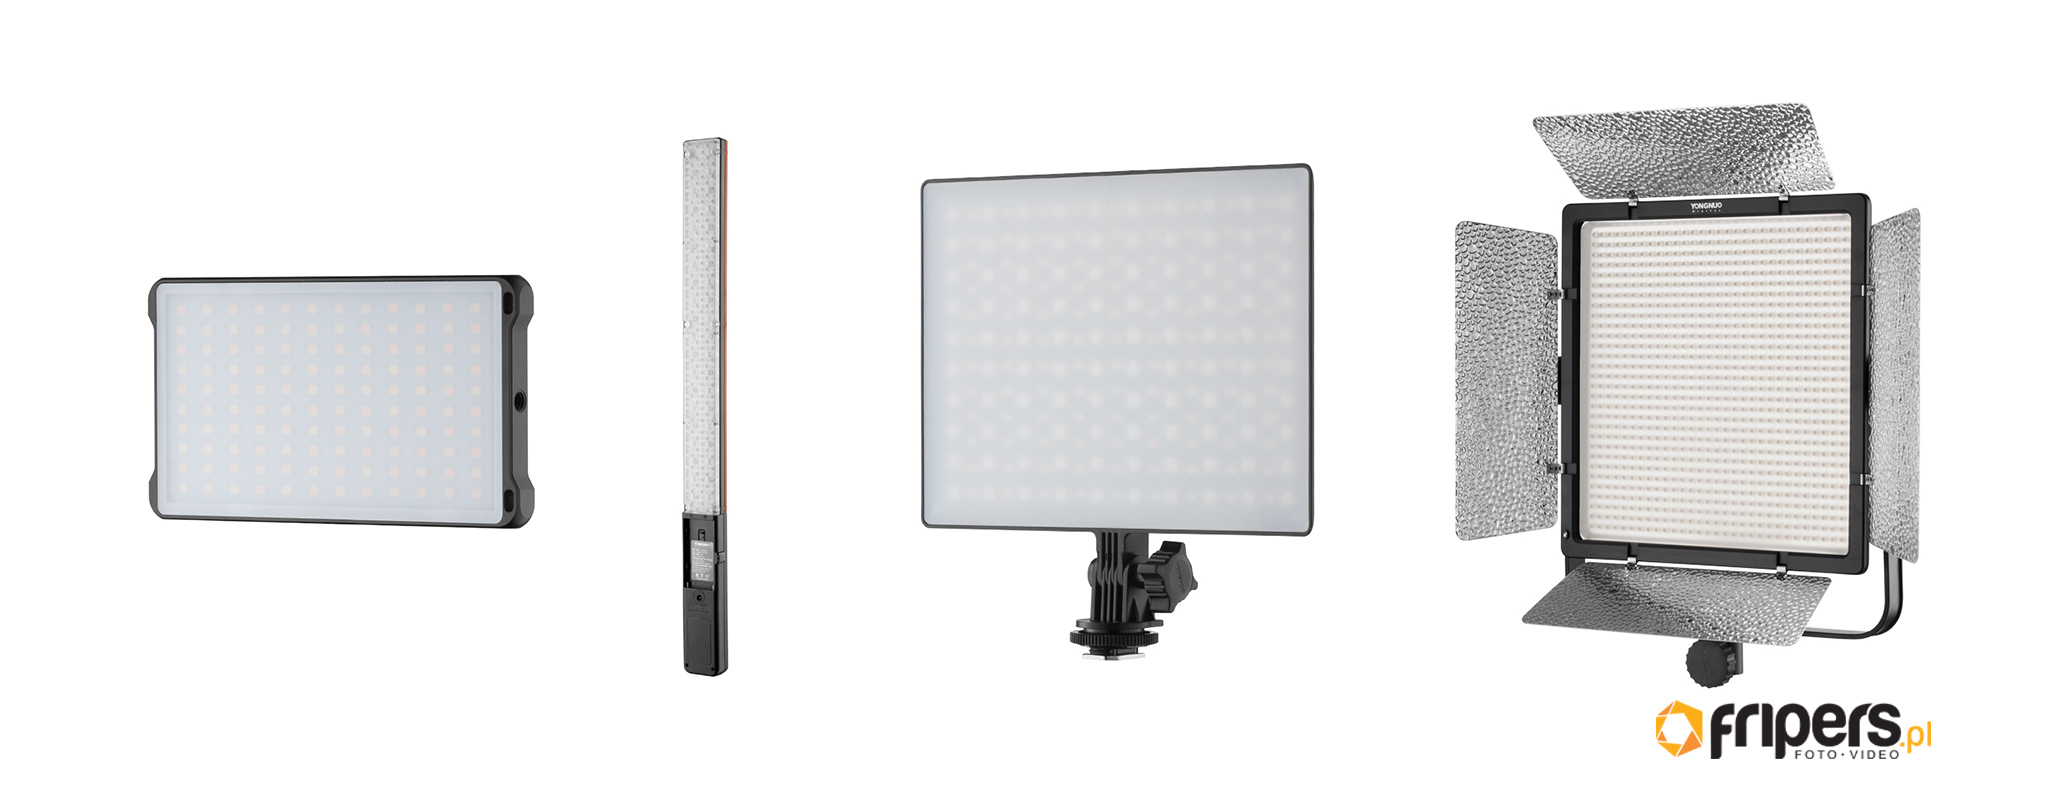 Lampy LED w video i fotografii - panele LED